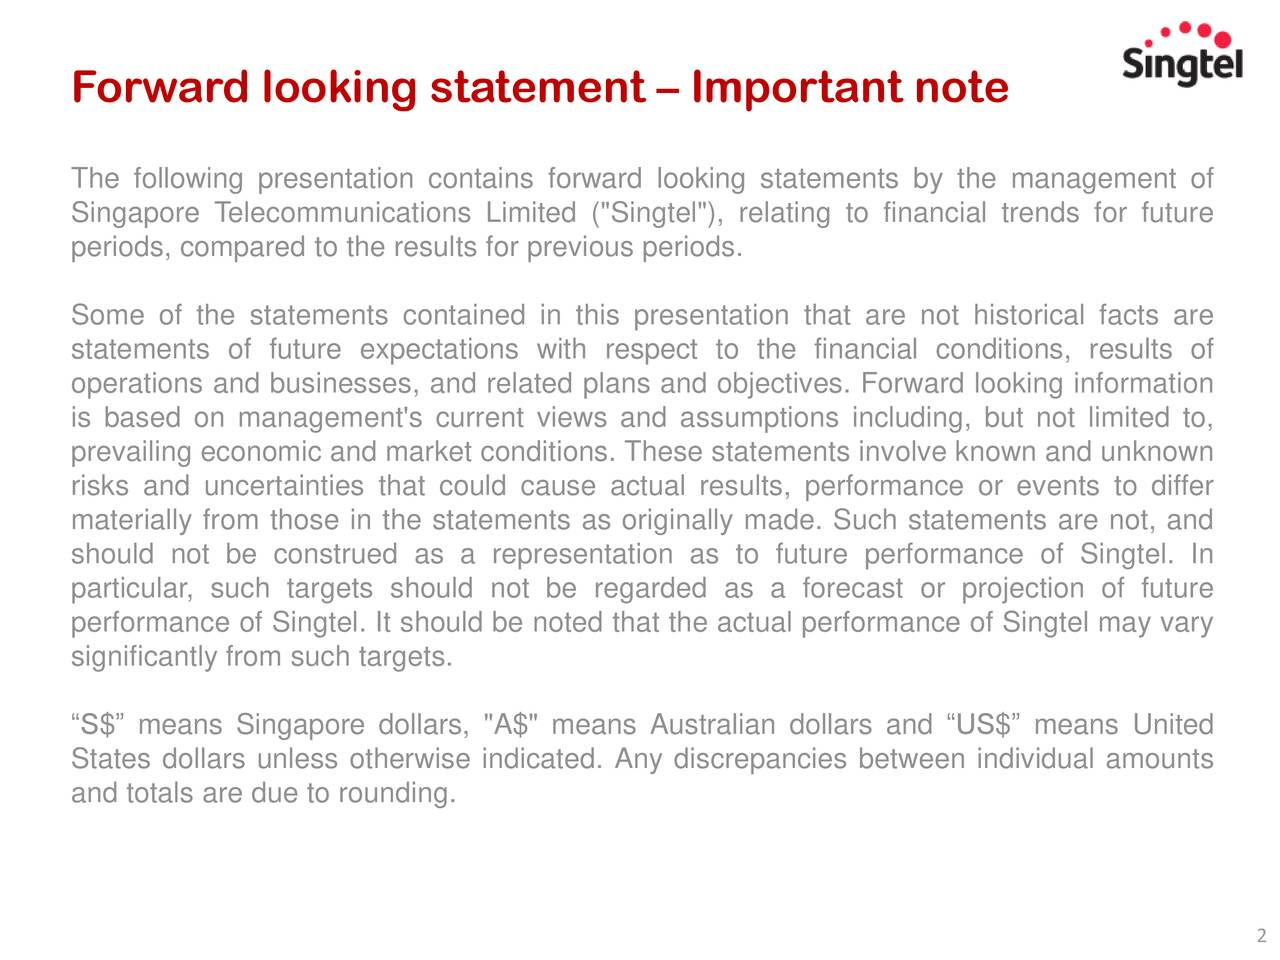 """The following presentation contains forward looking statements by the management of Singapore Telecommunications Limited (""""Singtel""""), relating to financial trends for future periods, compared to the results for previous periods. Some of the statements contained in this presentation that are not historical facts are statements of future expectations with respect to the financial conditions, results of operations and businesses, and related plans and objectives. Forward looking information is based on management's current views and assumptions including, but not limited to, prevailing economic and market conditions. These statements involve known and unknown risks and uncertainties that could cause actual results, performance or events to differ materially from those in the statements as originally made. Such statements are not, and should not be construed as a representation as to future performance of Singtel. In particular, such targets should not be regarded as a forecast or projection of future performance of Singtel. It should be noted that the actual performance of Singtel may vary significantly from such targets. """"S$"""" means Singapore dollars, """"A$"""" means Australian dollars and """"US$"""" means United States dollars unless otherwise indicated. Any discrepancies between individual amounts and totals are due to rounding. 2"""